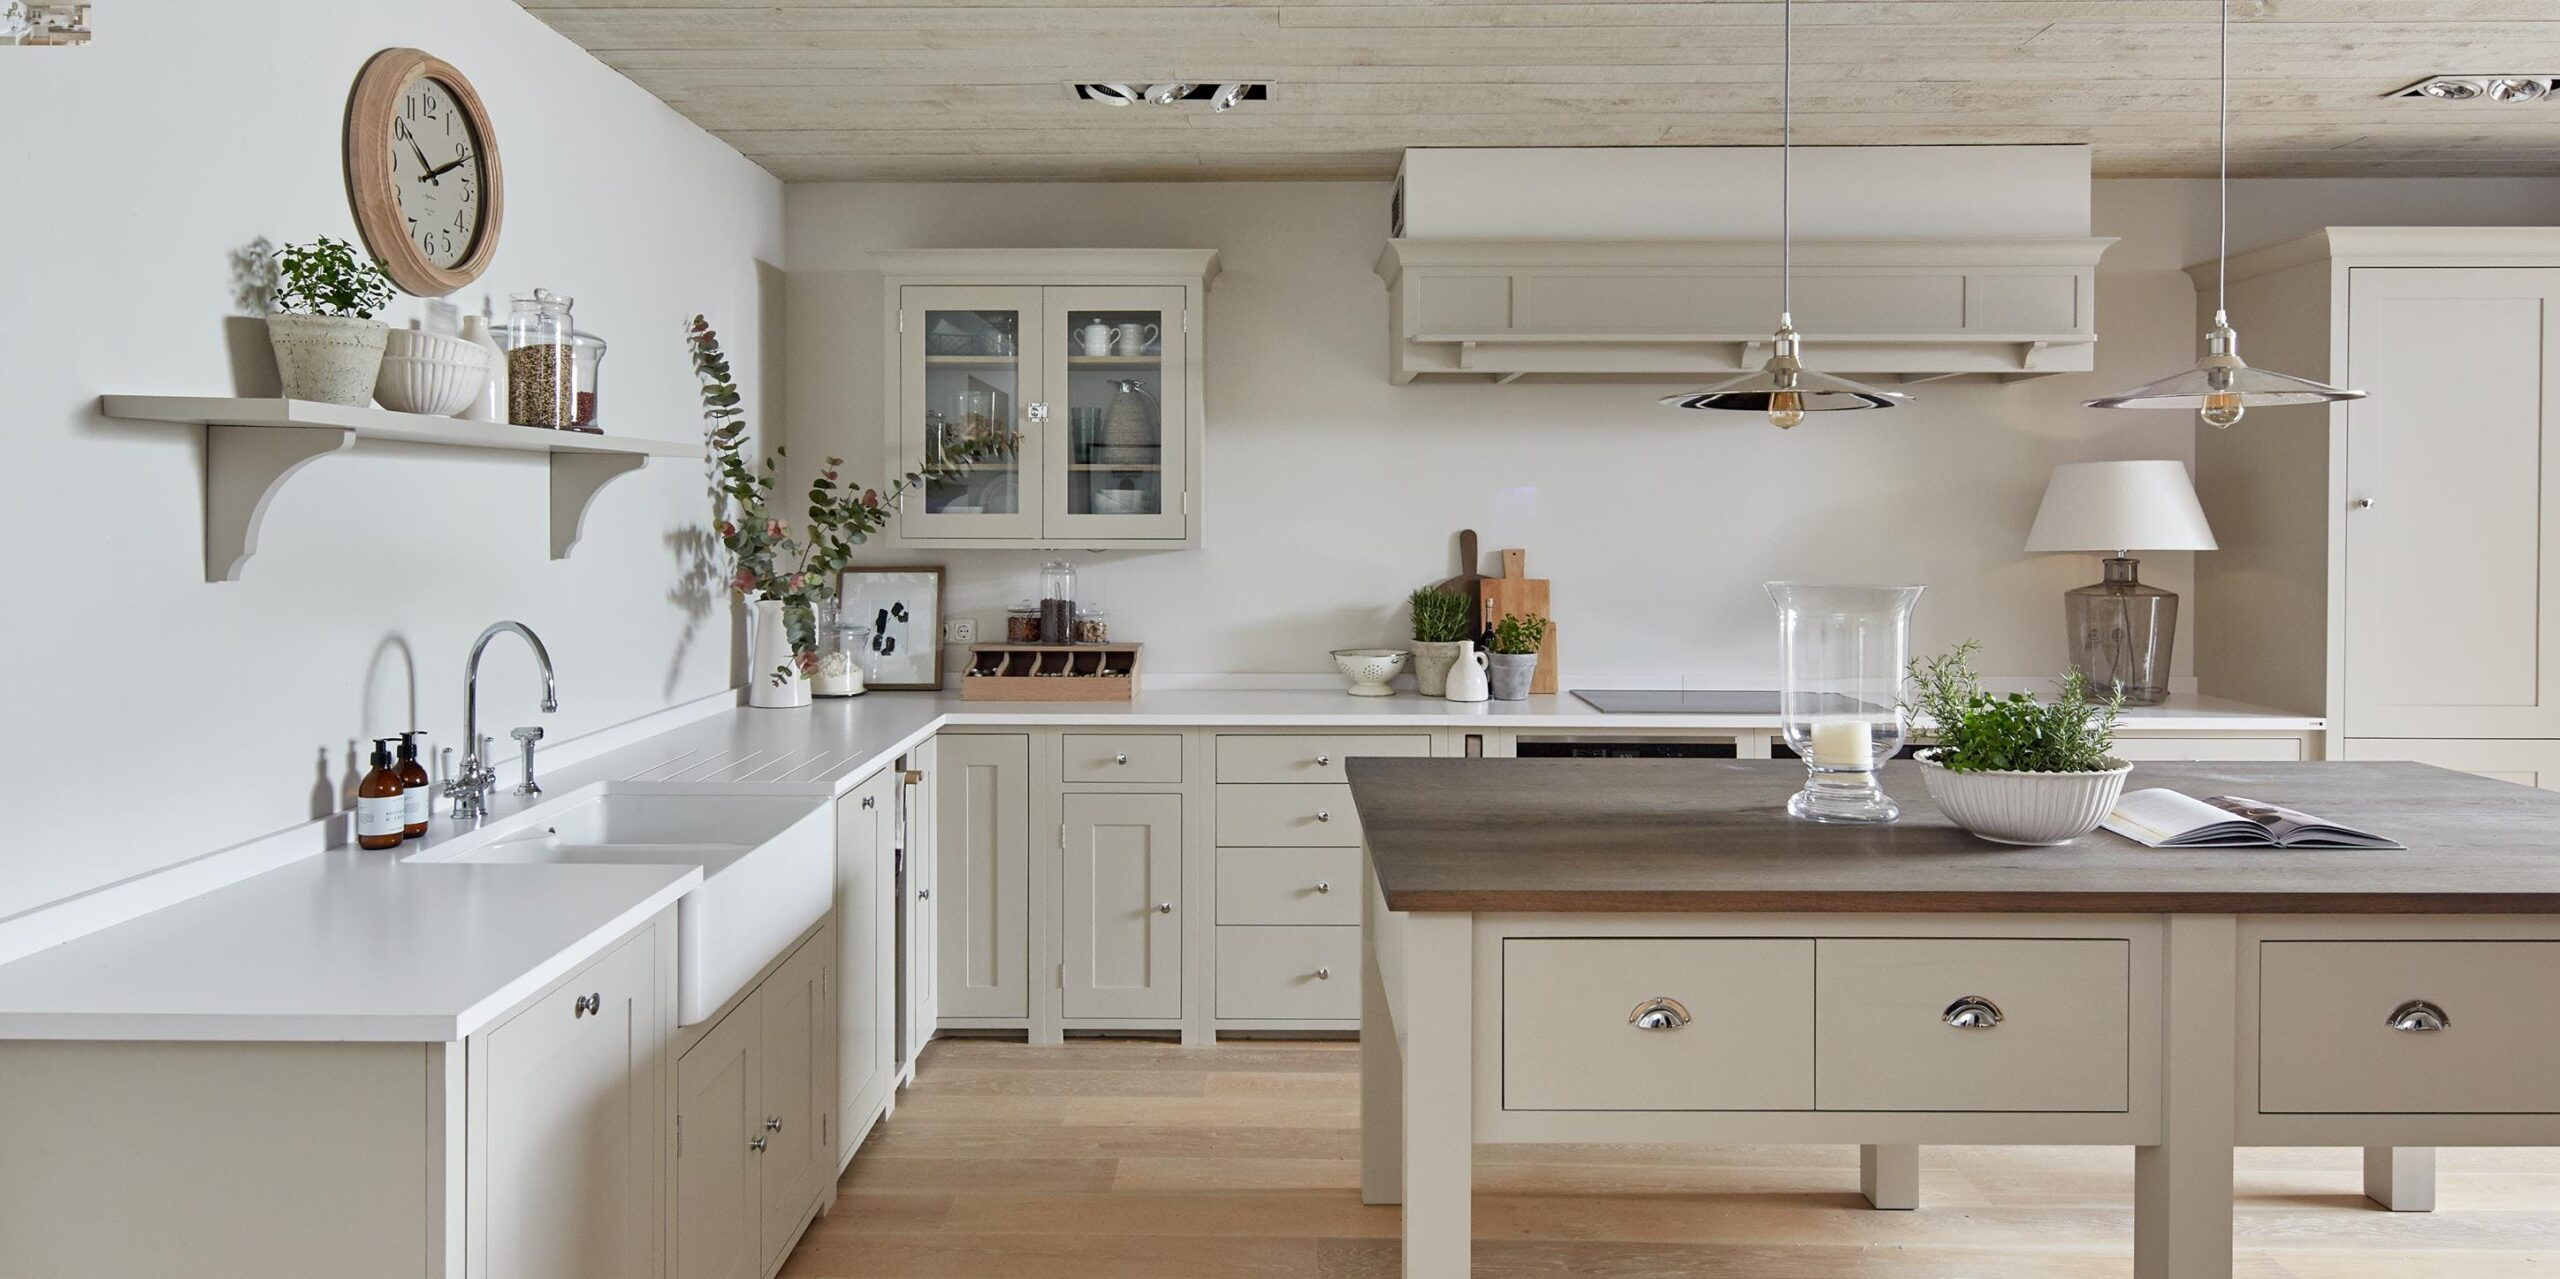 Image of Rustic kitchen 0 2 scaled in {{Seven ways to create a rustic kitchen}} - Cosentino